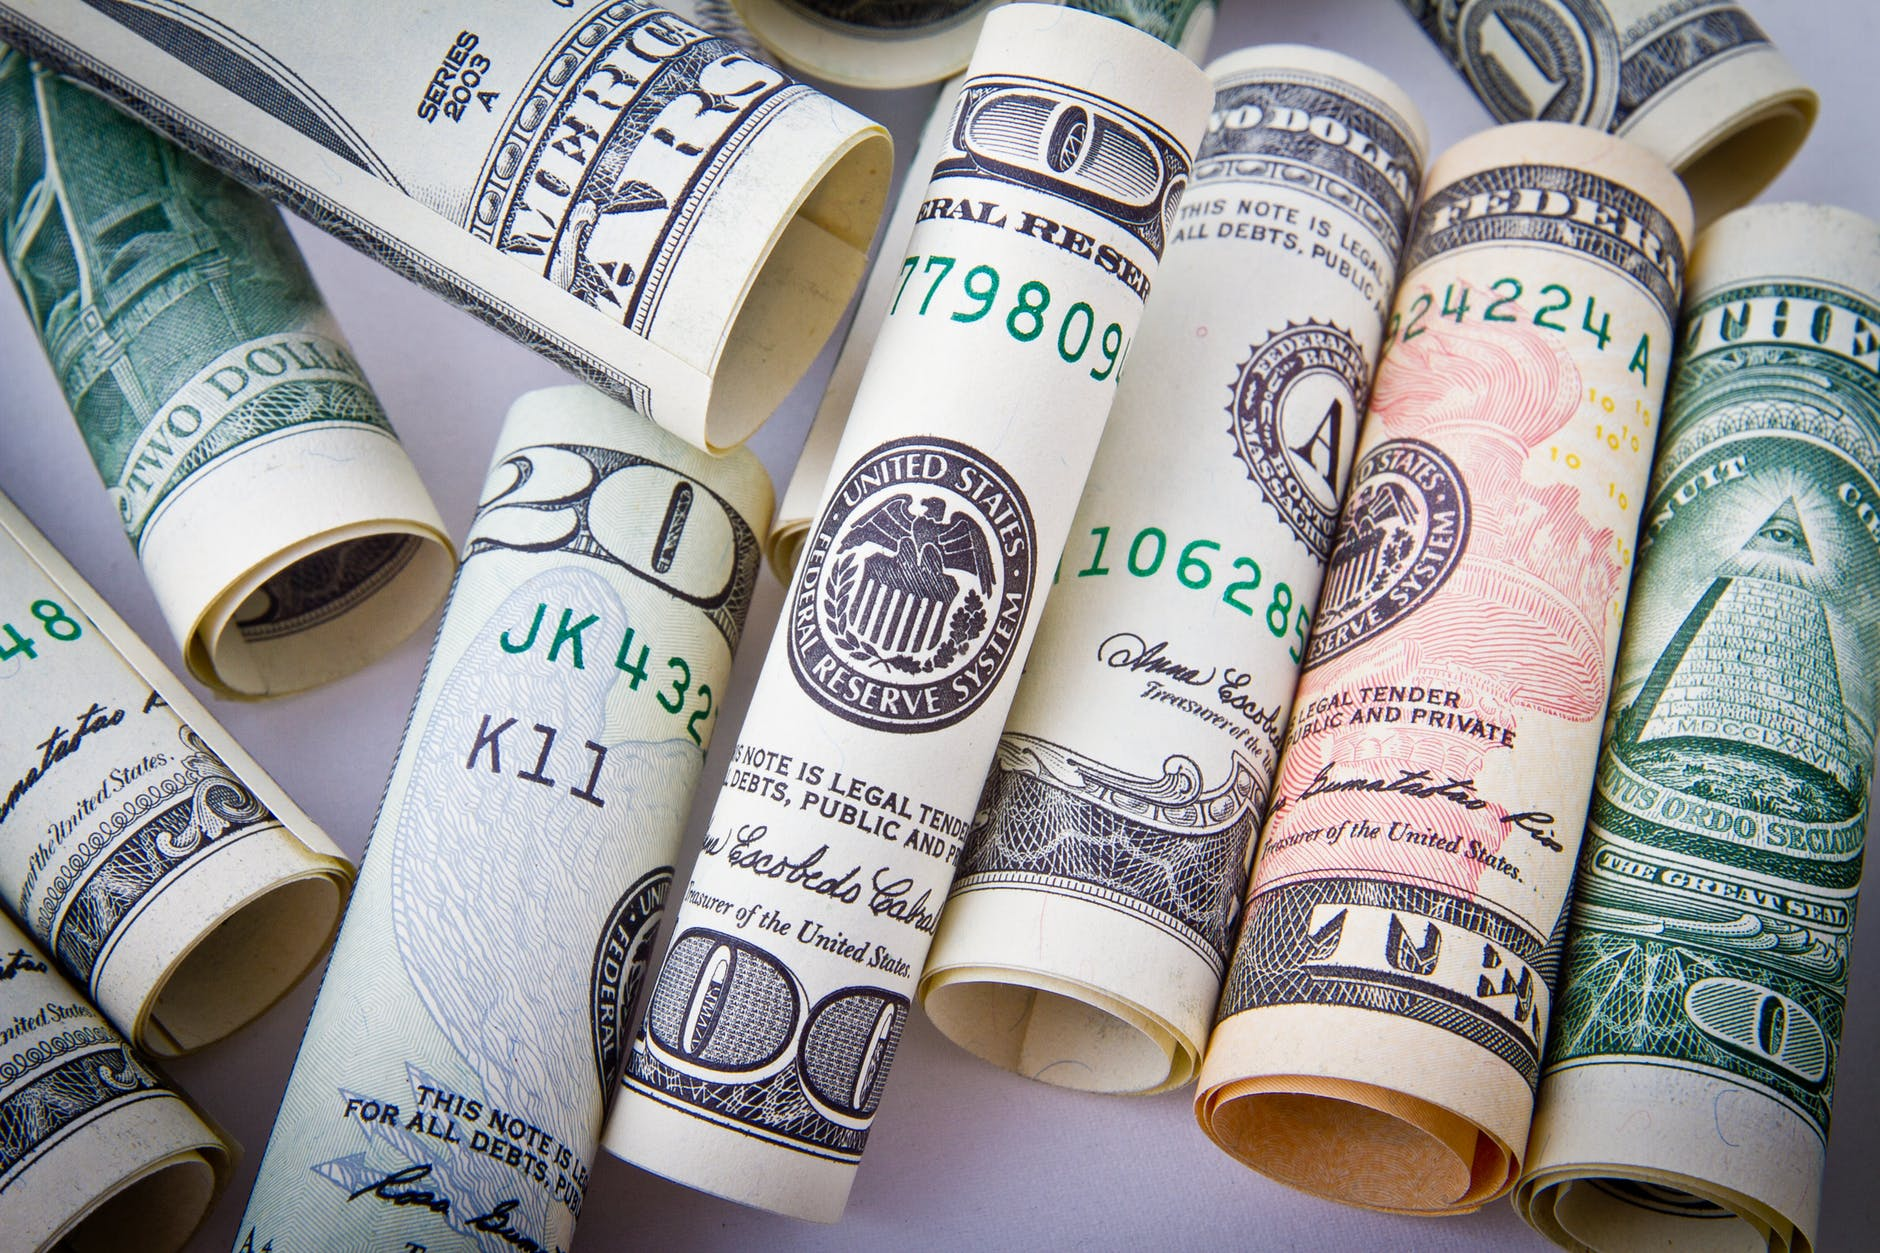 Money folded up in tight rolls: It is important to save money for long-term care.